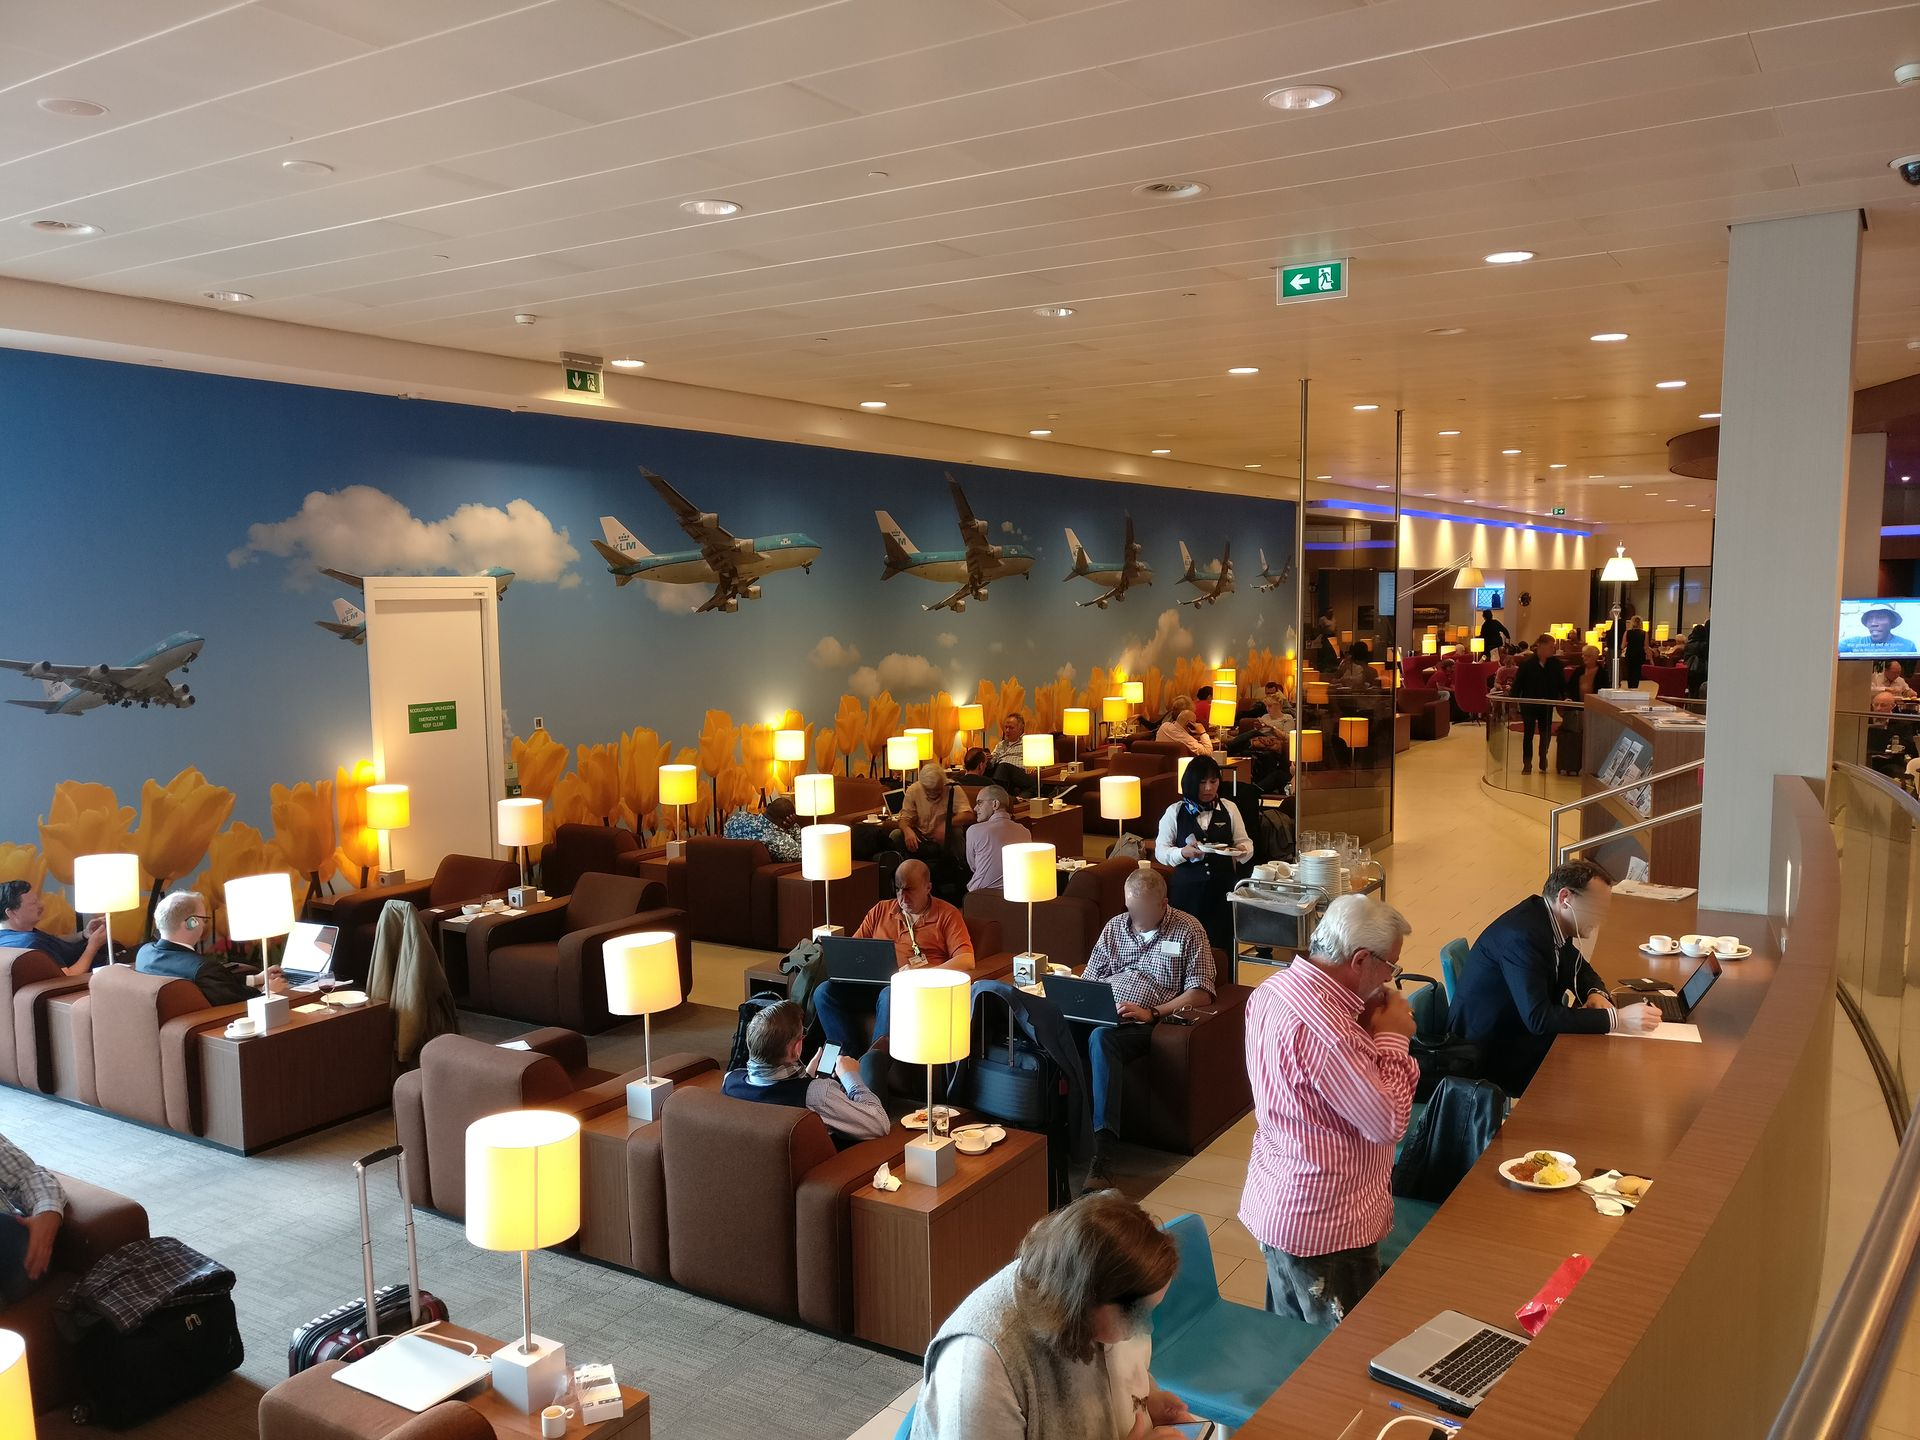 KLM Crown Lounge Amsterdam Non-Schengen Seating